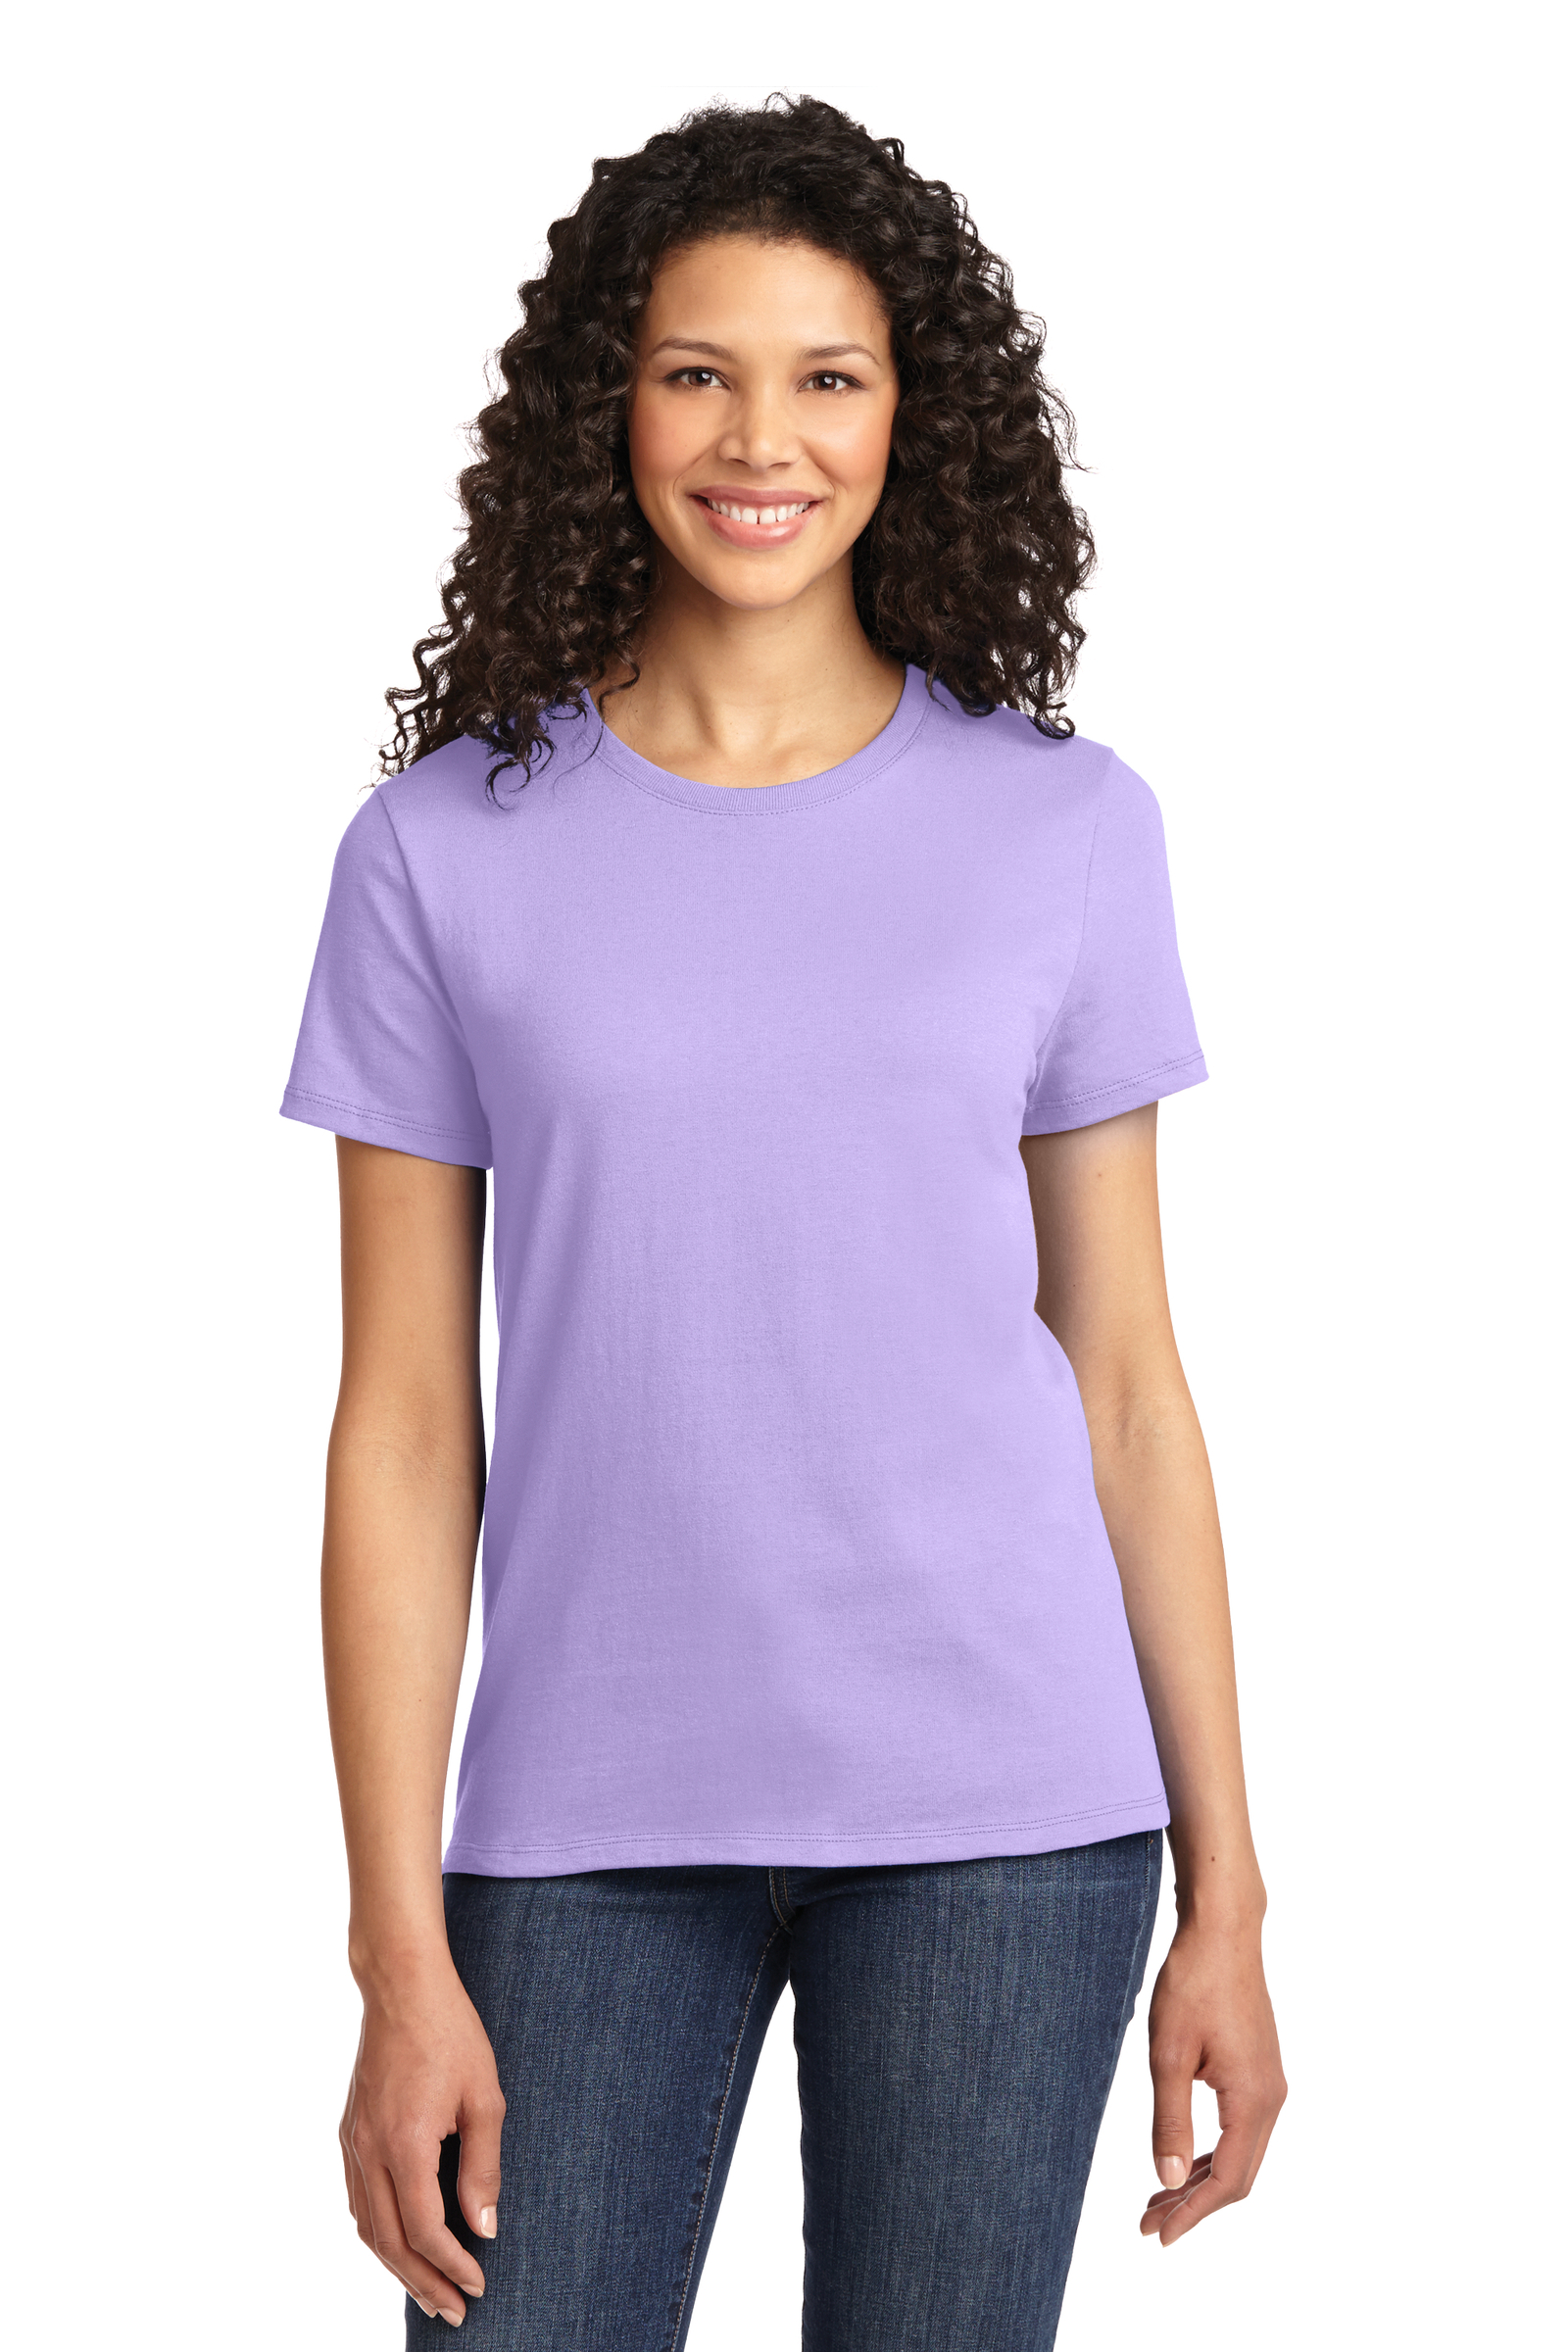 Port & Company Embroidered Women's Essential Tee